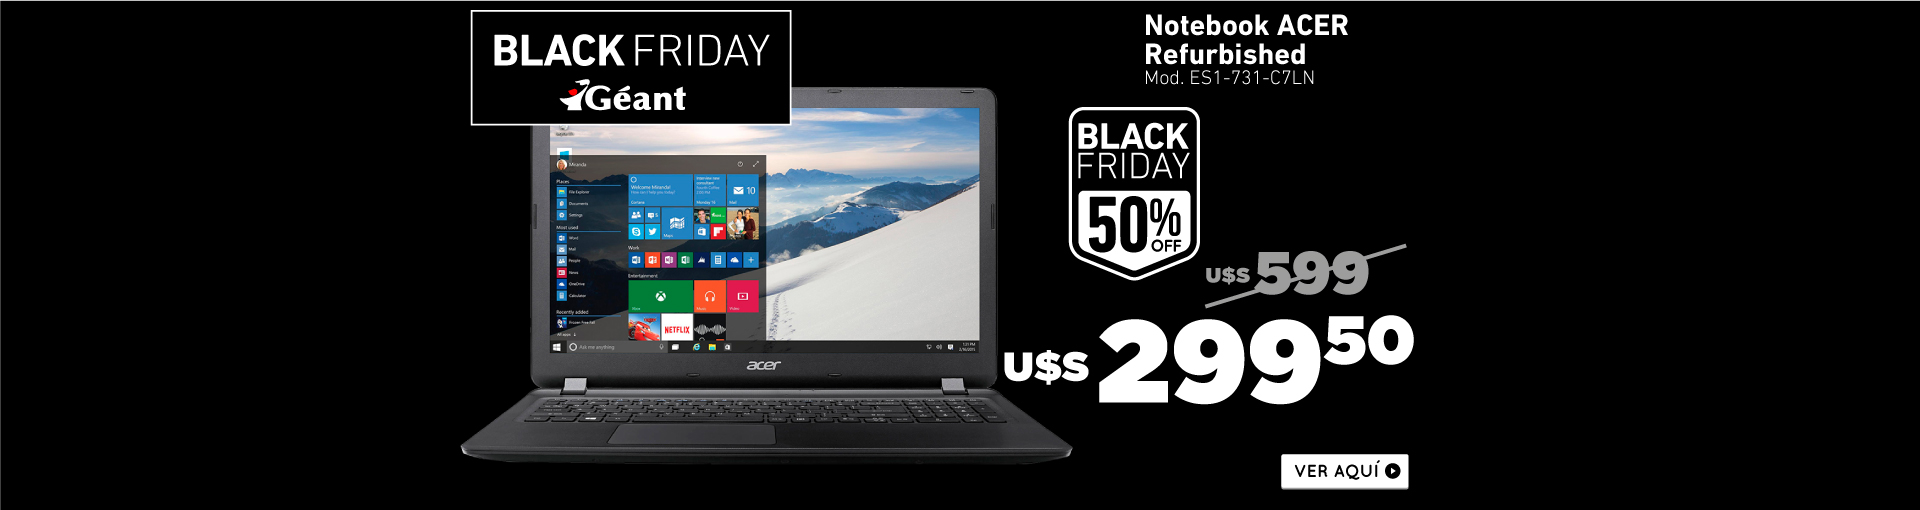 h-02-585828-notebook-acer-BLACKFRIDAY